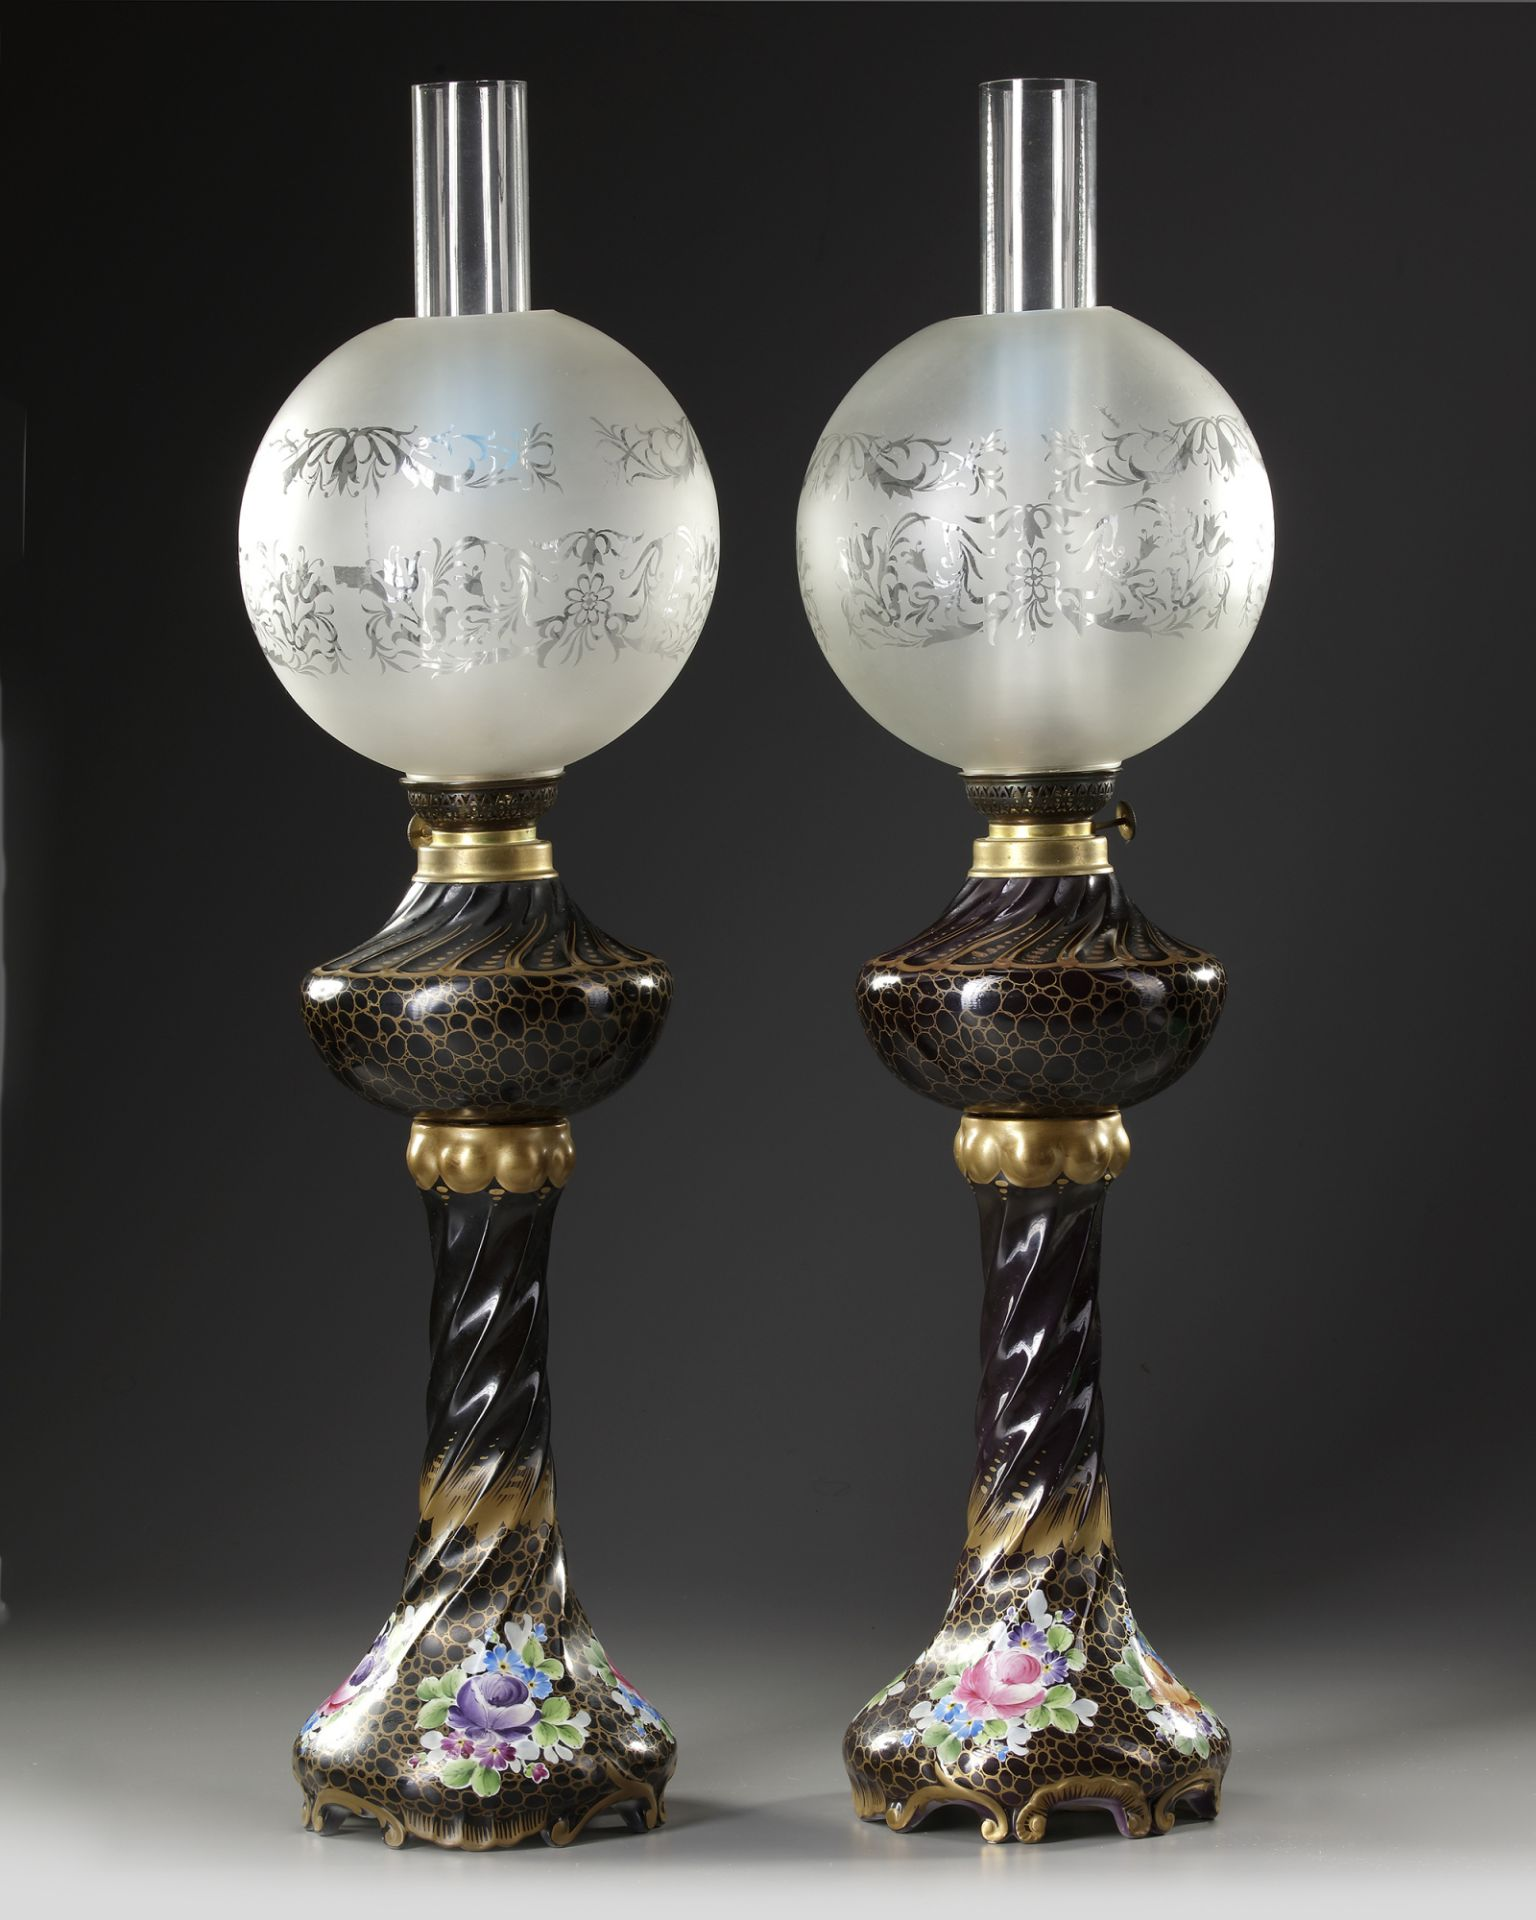 A PAIR OF FRENCH BLACK PORCELAIN LAMPS, LATE 19TH CENTURY